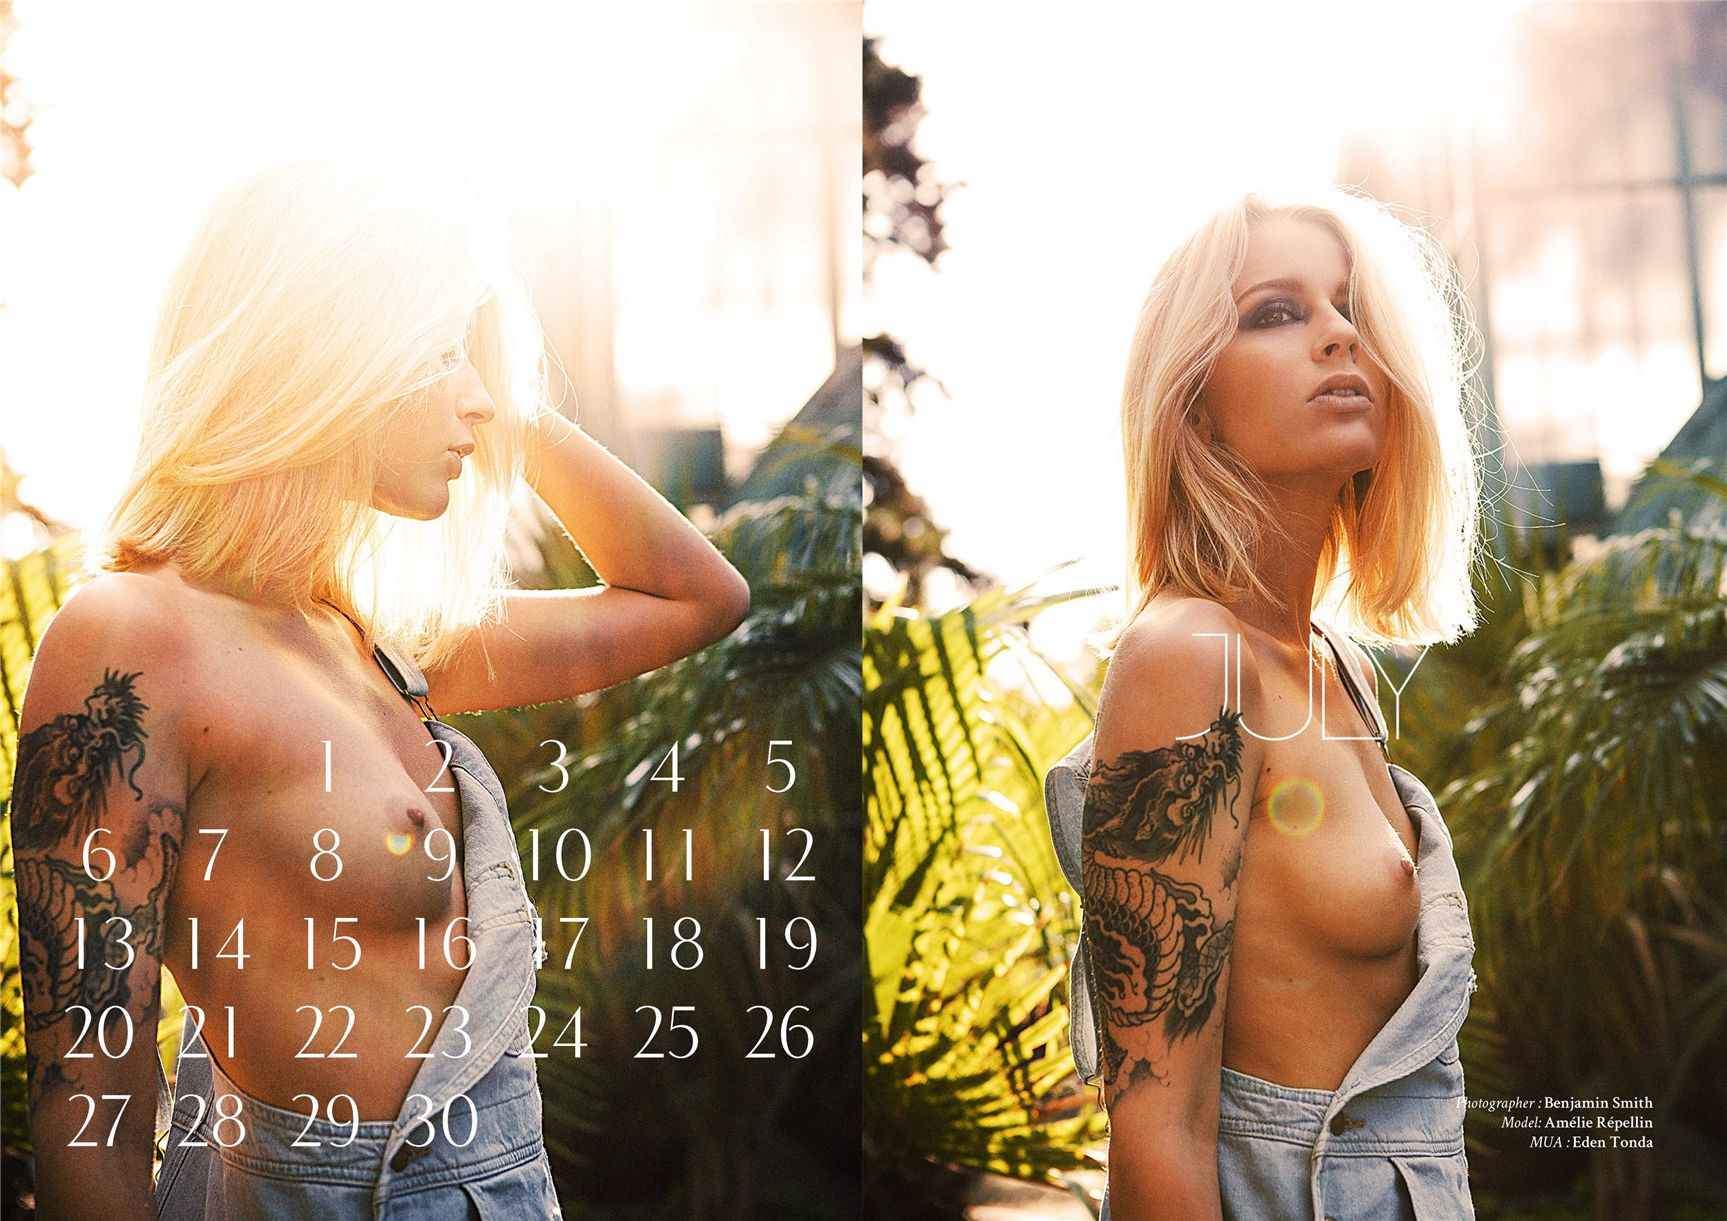 �����-������������� ��������� ������� Bizart 2015 calendar - Amelie Repellin by Benjamin Smith